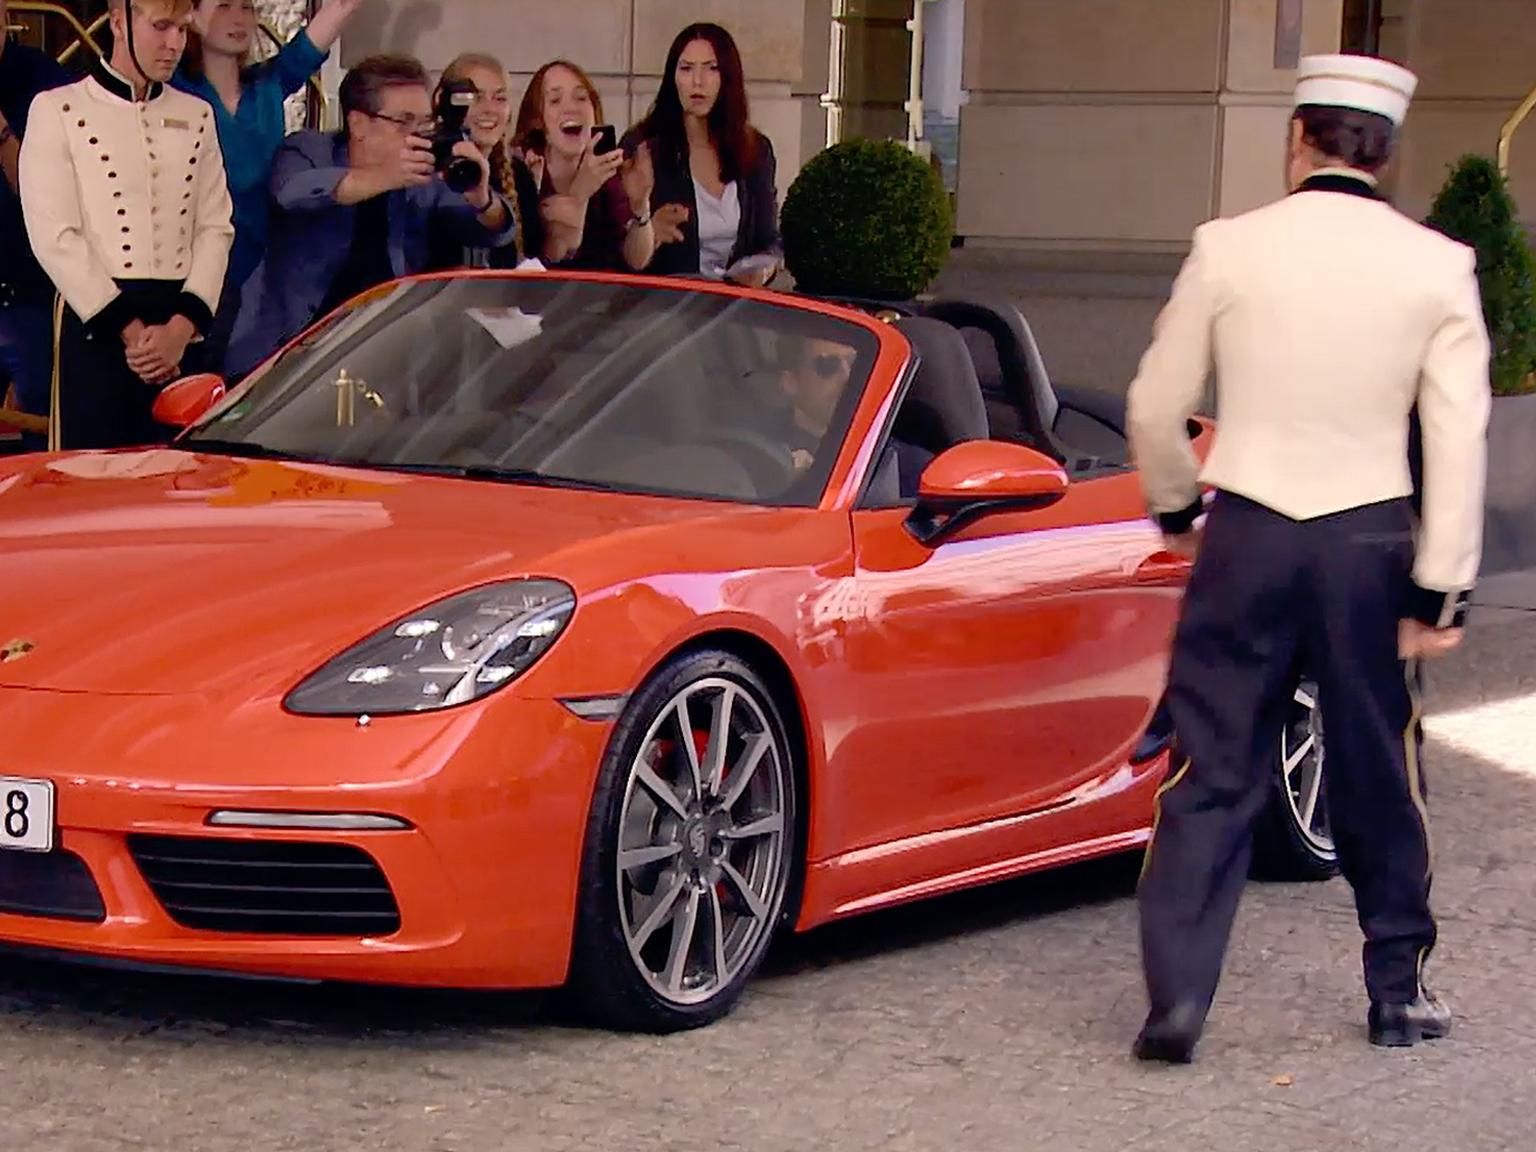 Image for Patrick Dempsey's way of arriving at a hotel driveway